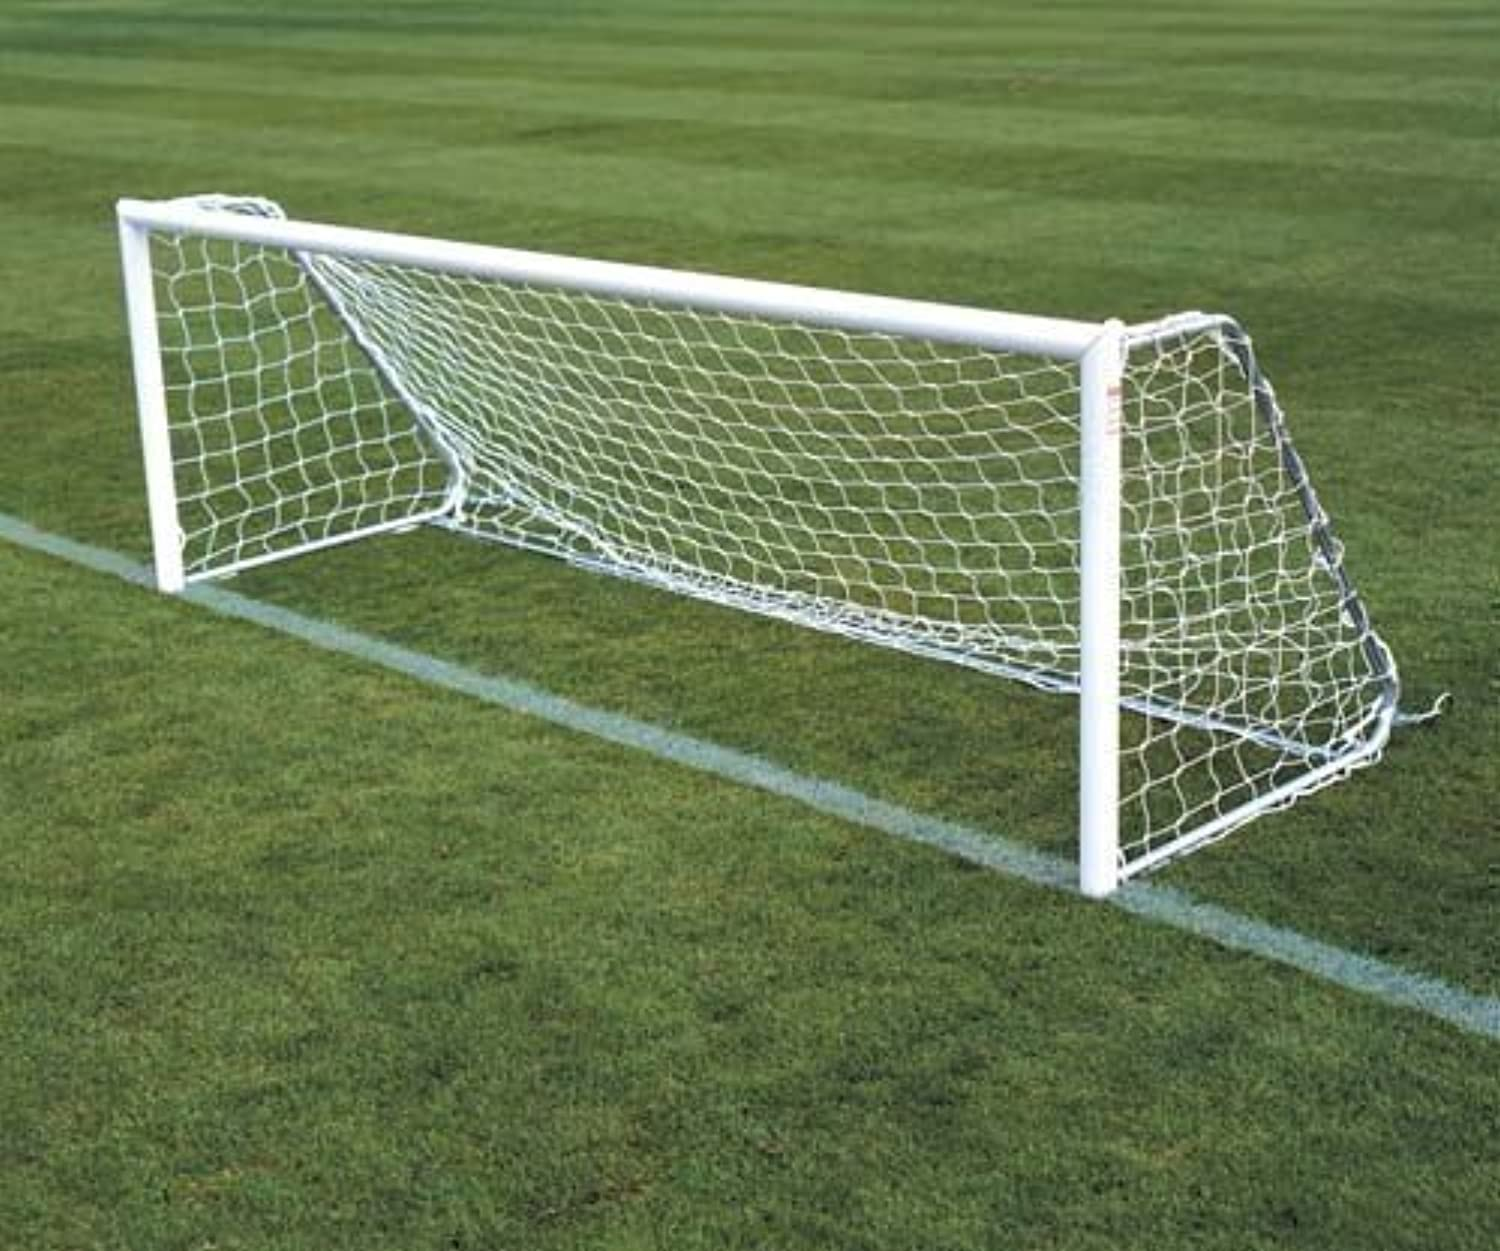 New FiveASide Football Goal Nets Standard Extra Heavy White Polythene Cord Net